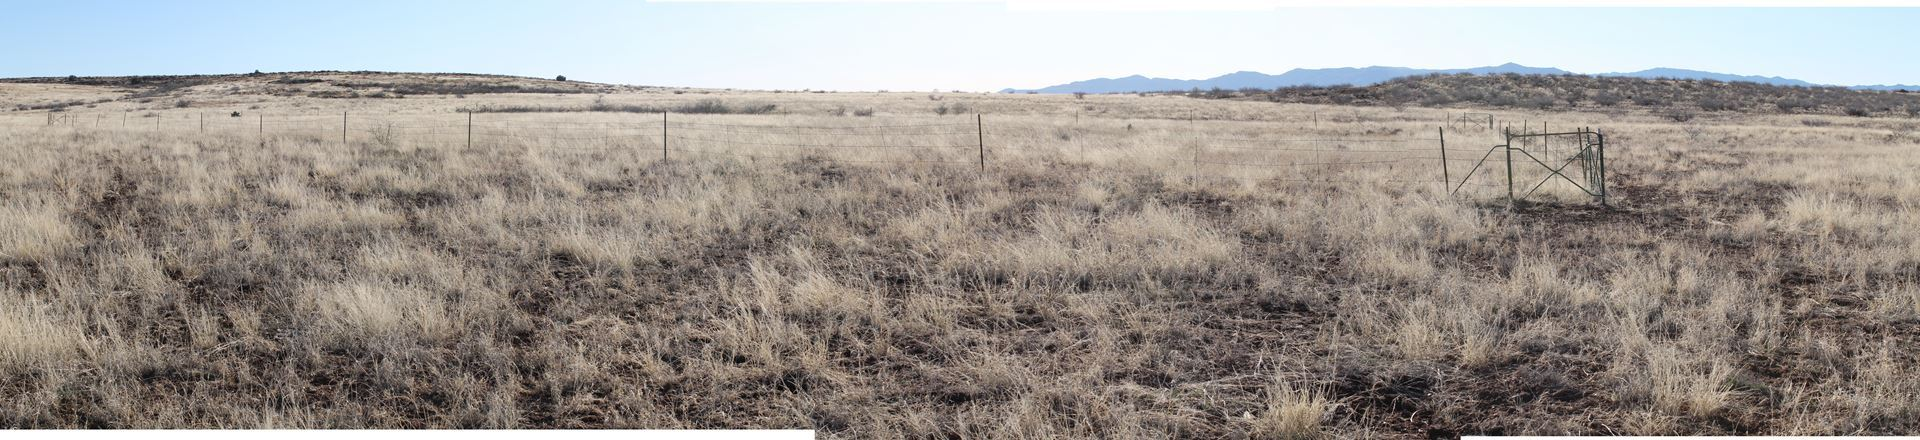 Wintertime grassland and monitored exclosure plot, AFNM, March 2013.